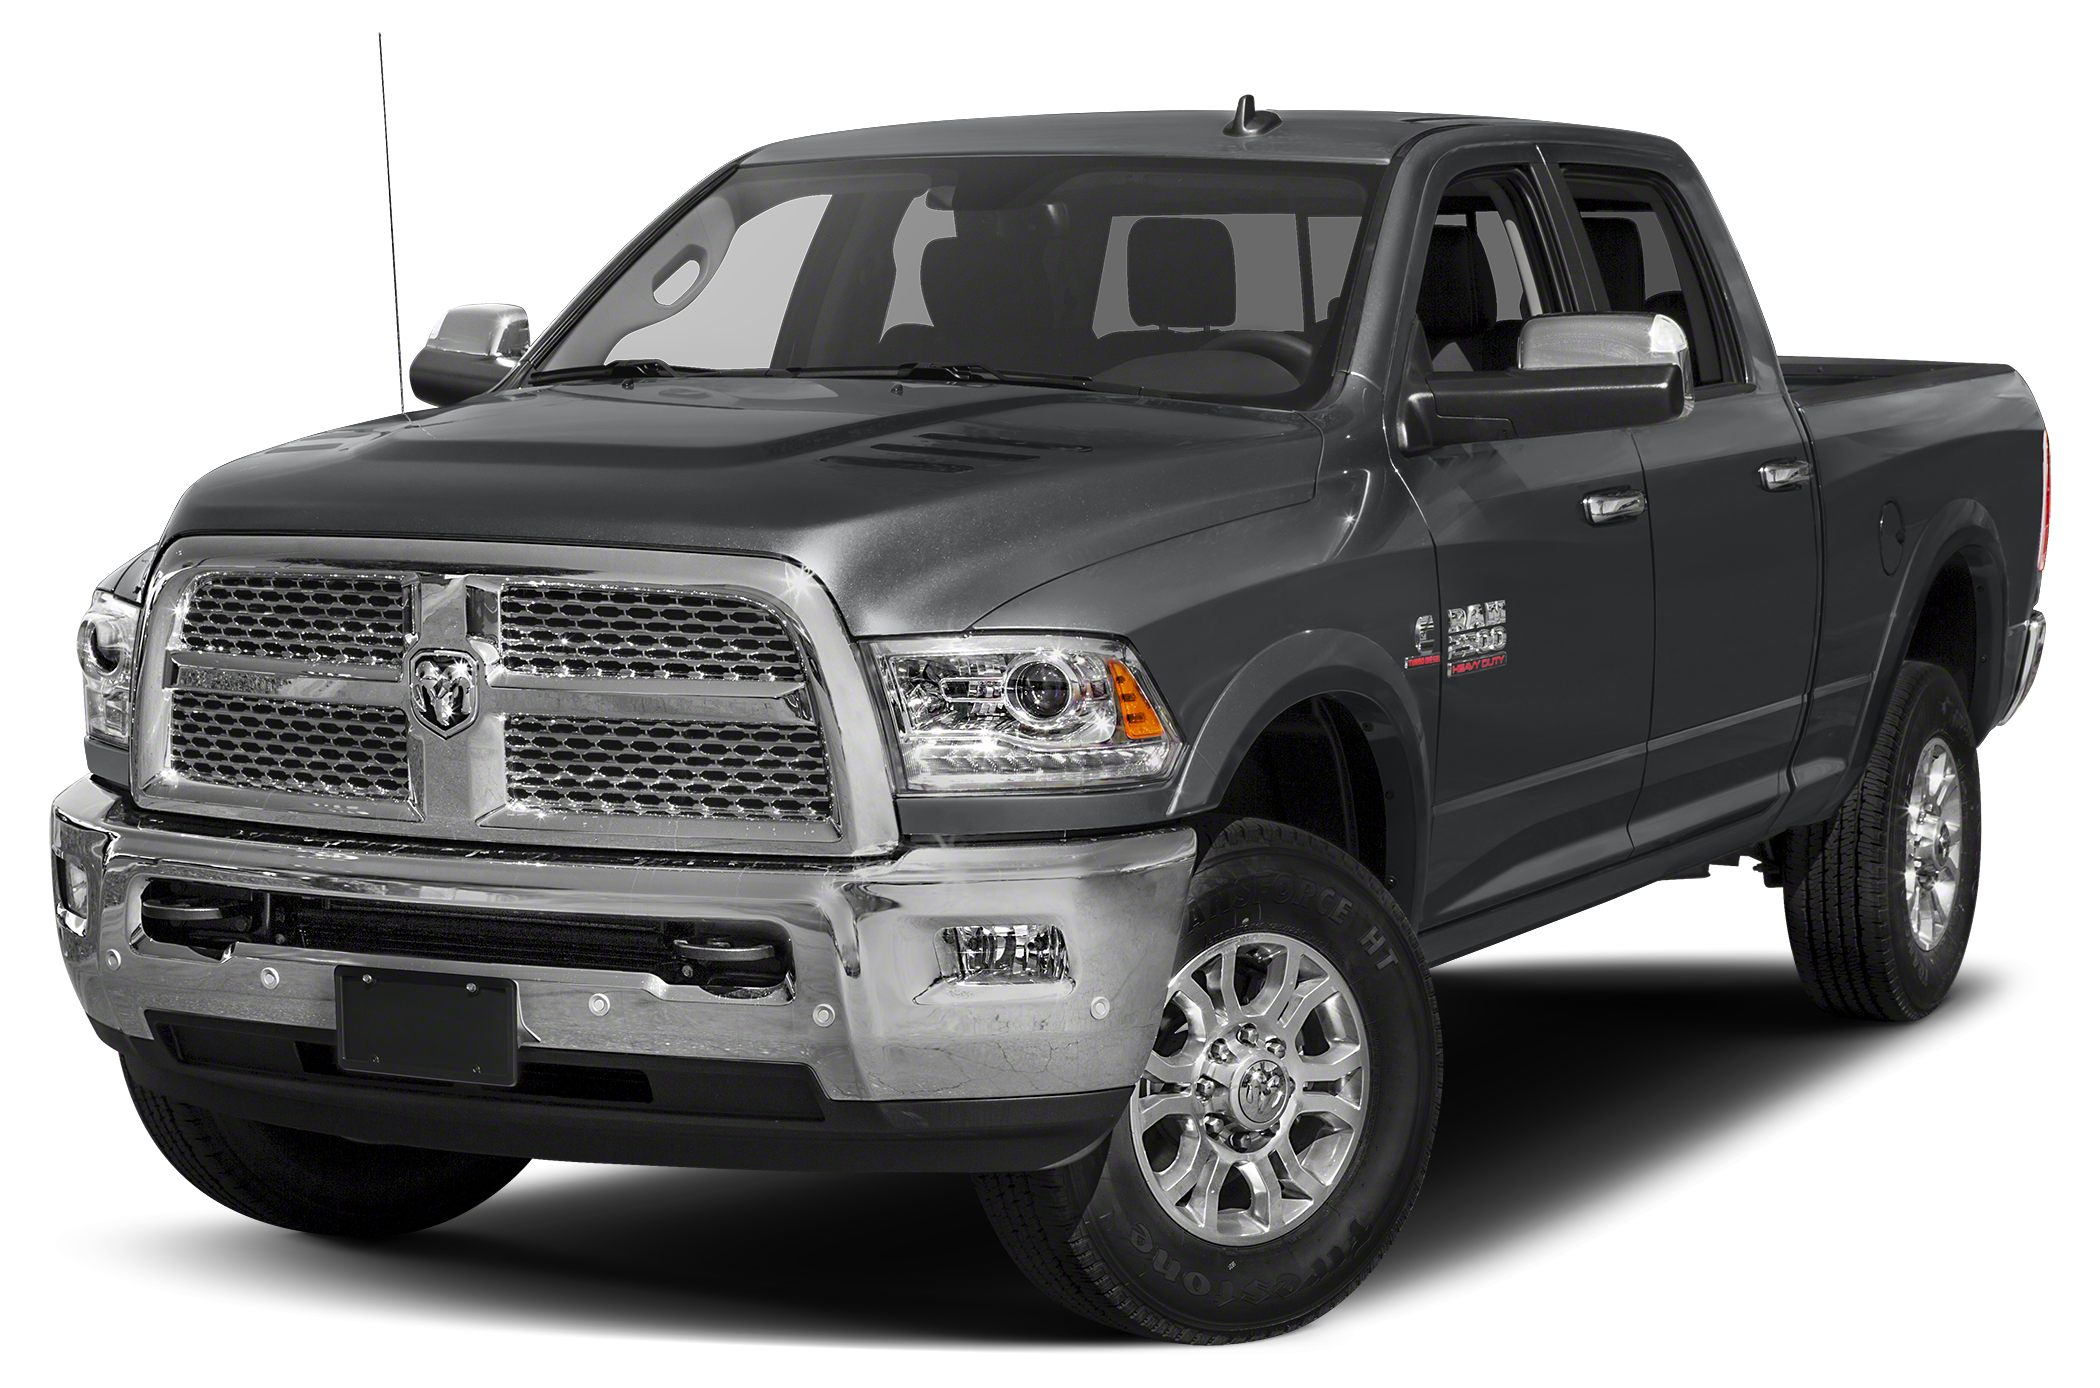 2017 RAM 2500 Laramie Youve been searching for that one-time deal and I think Ive hit the nail